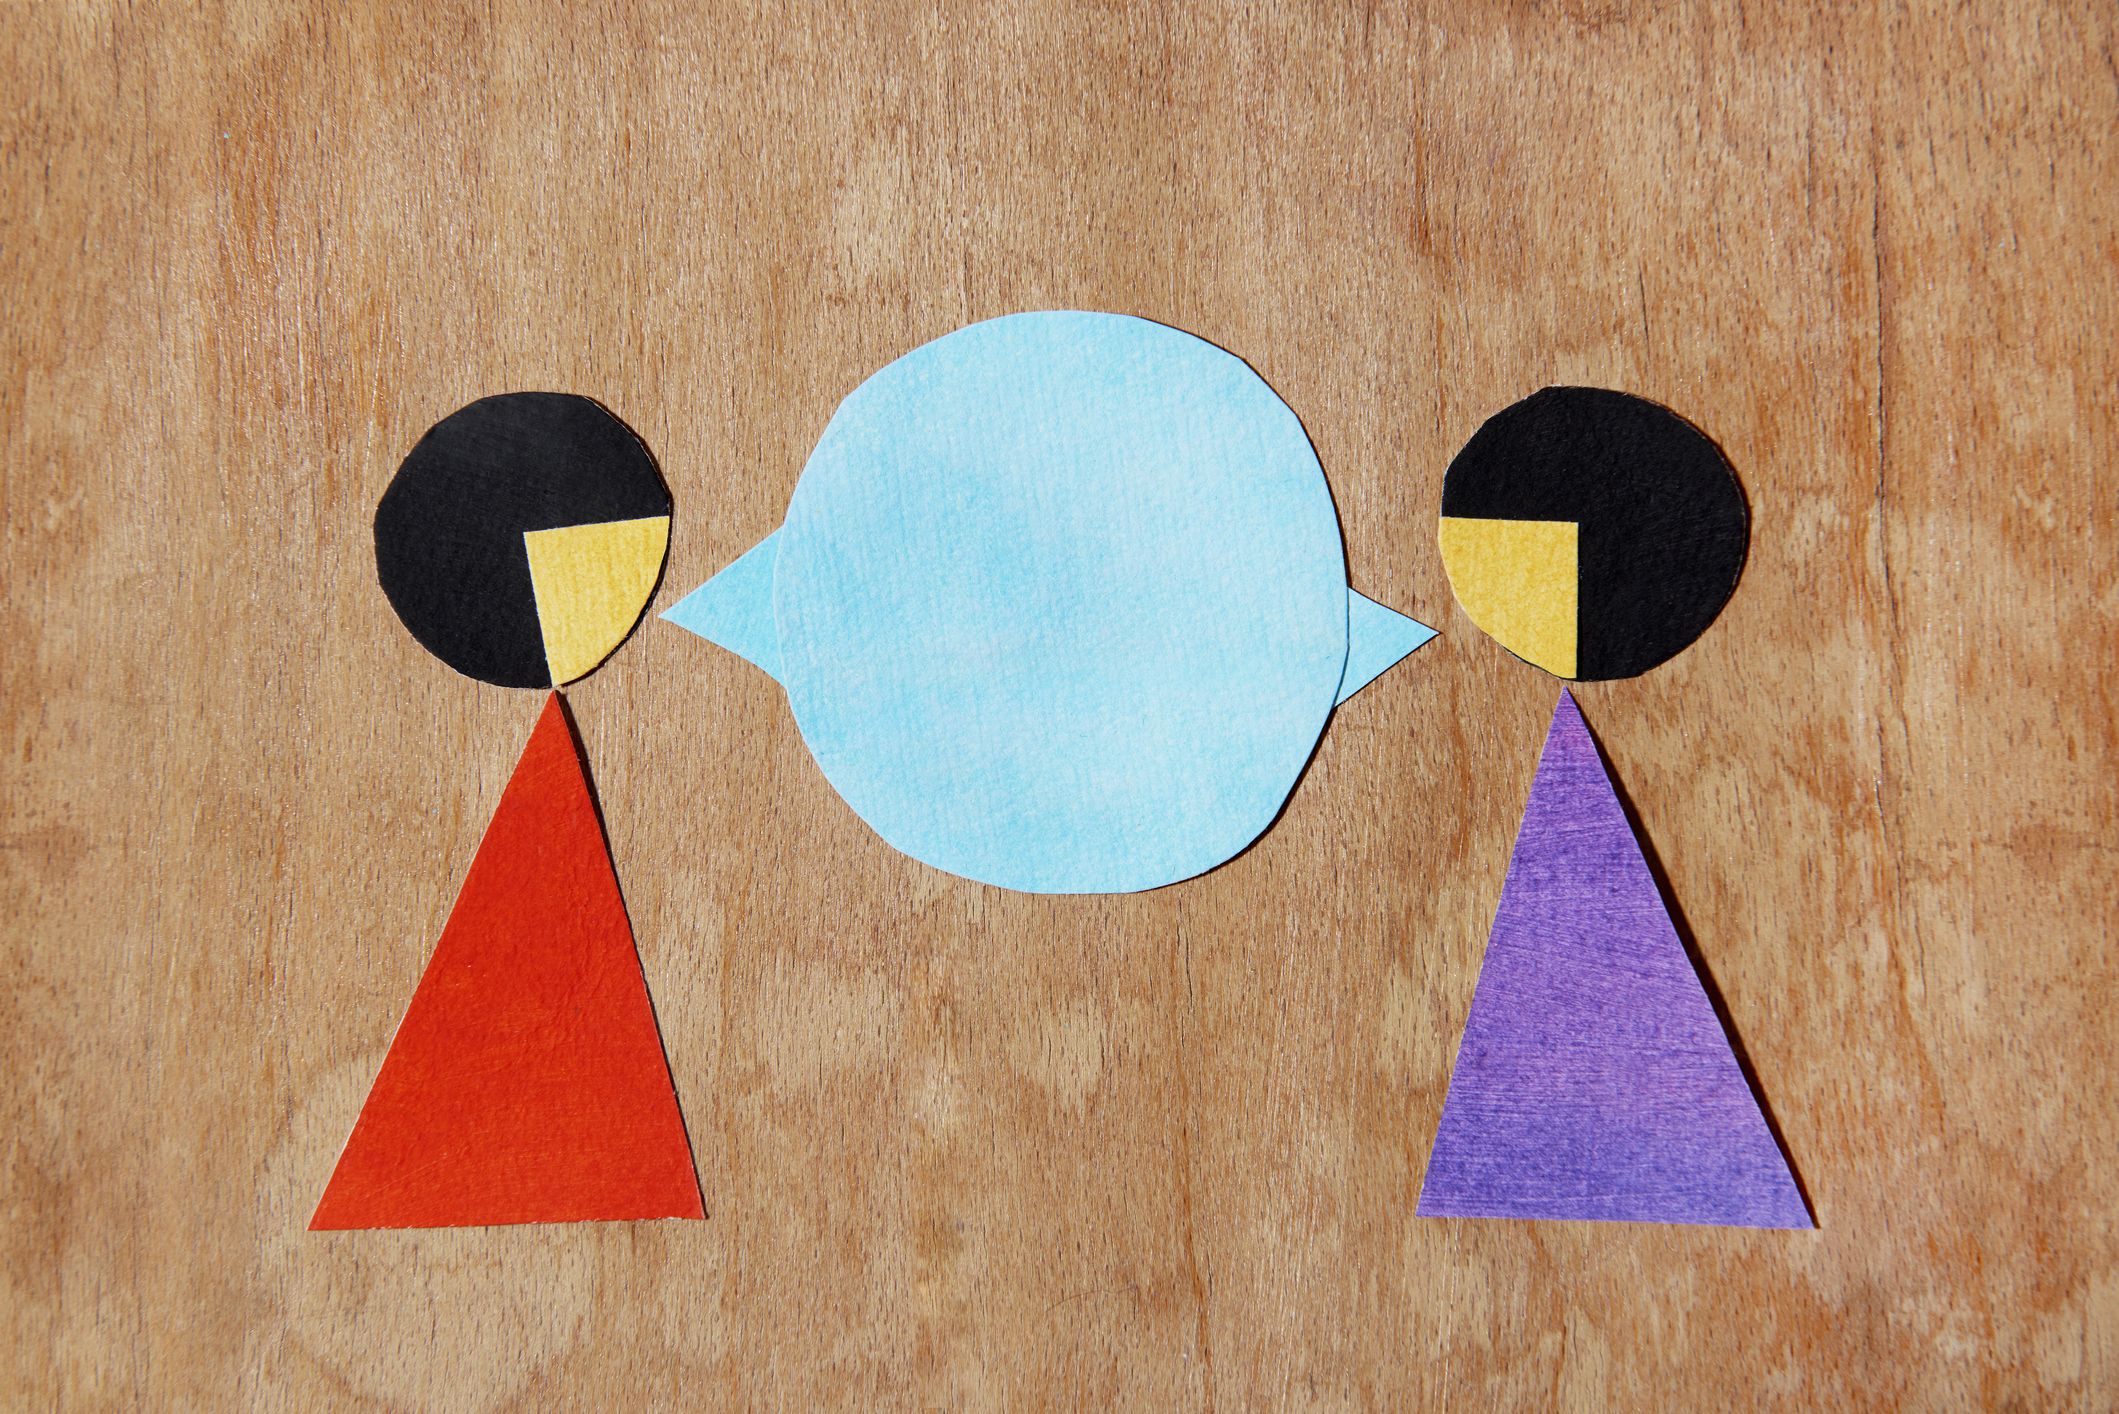 Some paper cutouts represent two women talking.